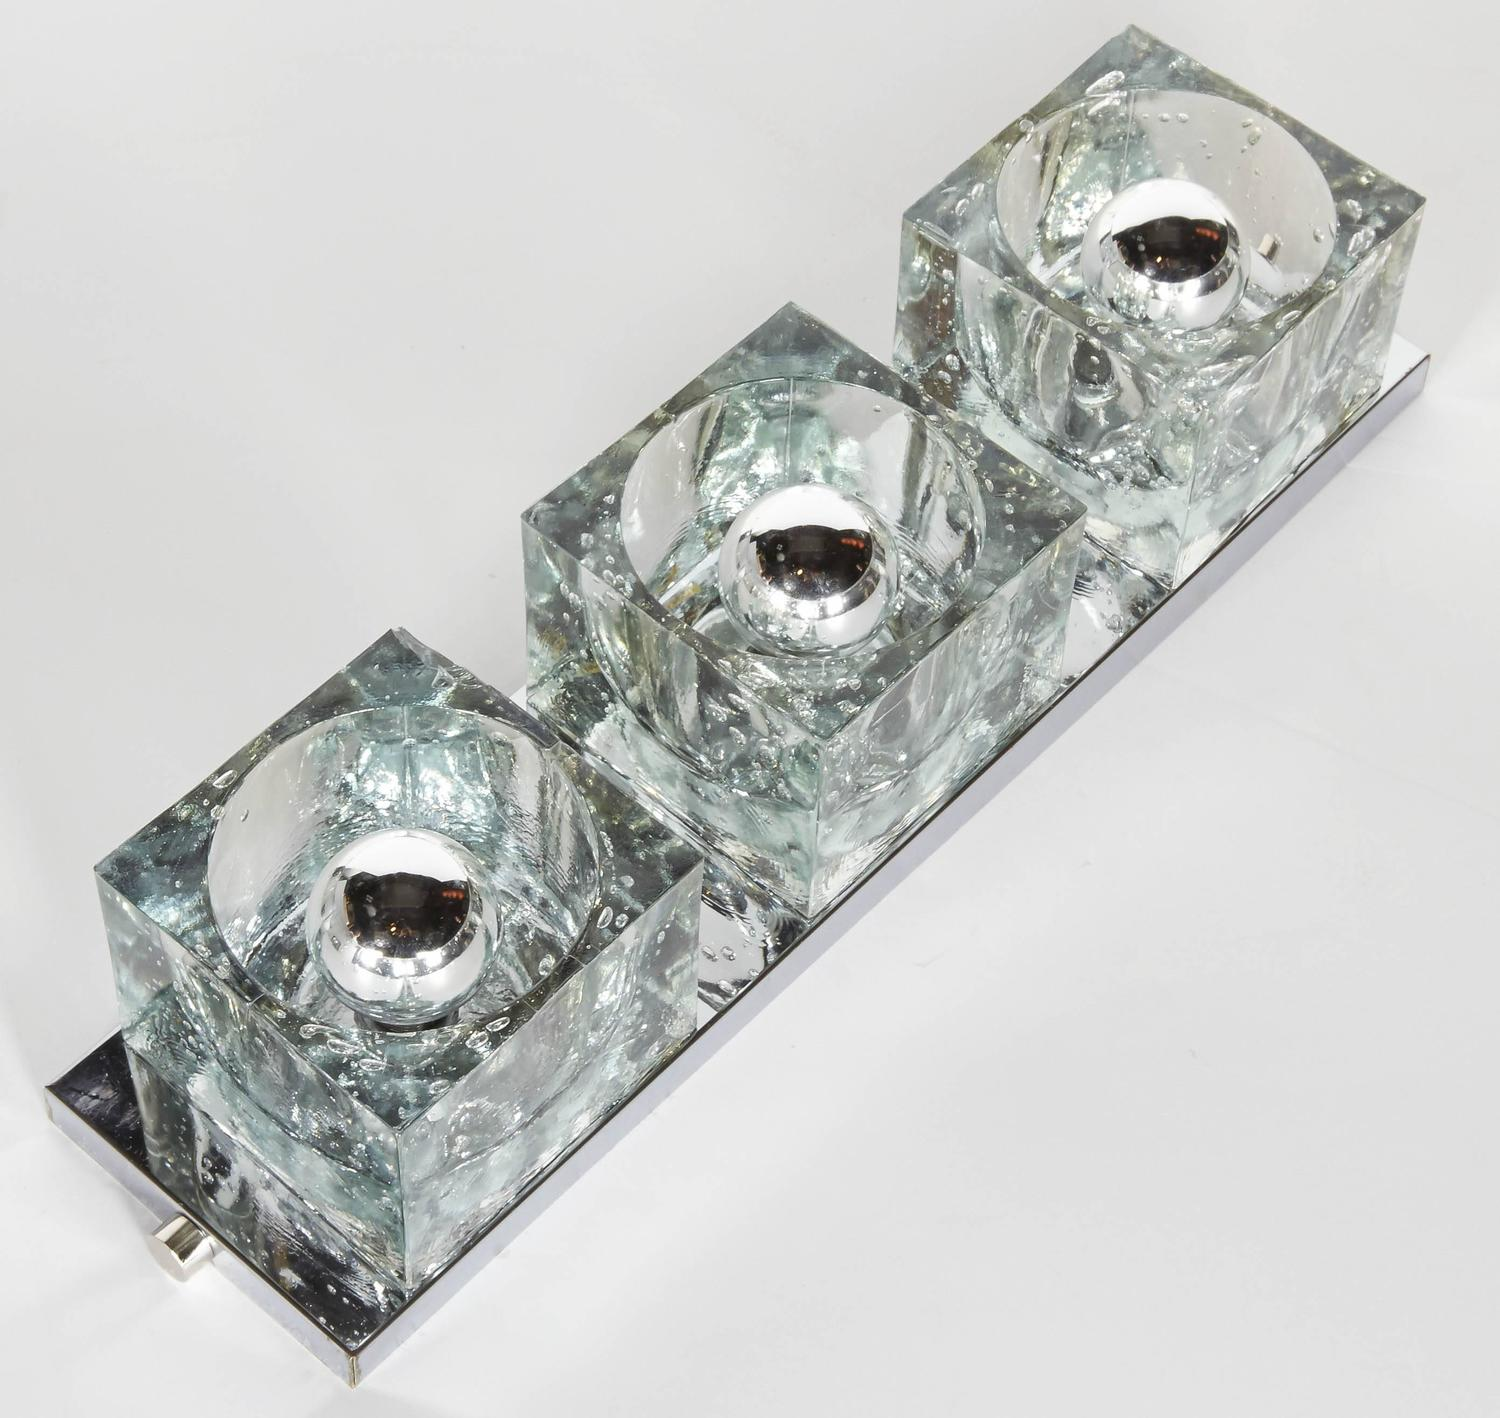 Mid-Century Modern Wall Light with Large Glass Block Shades by Gaetano Sciolari at 1stdibs